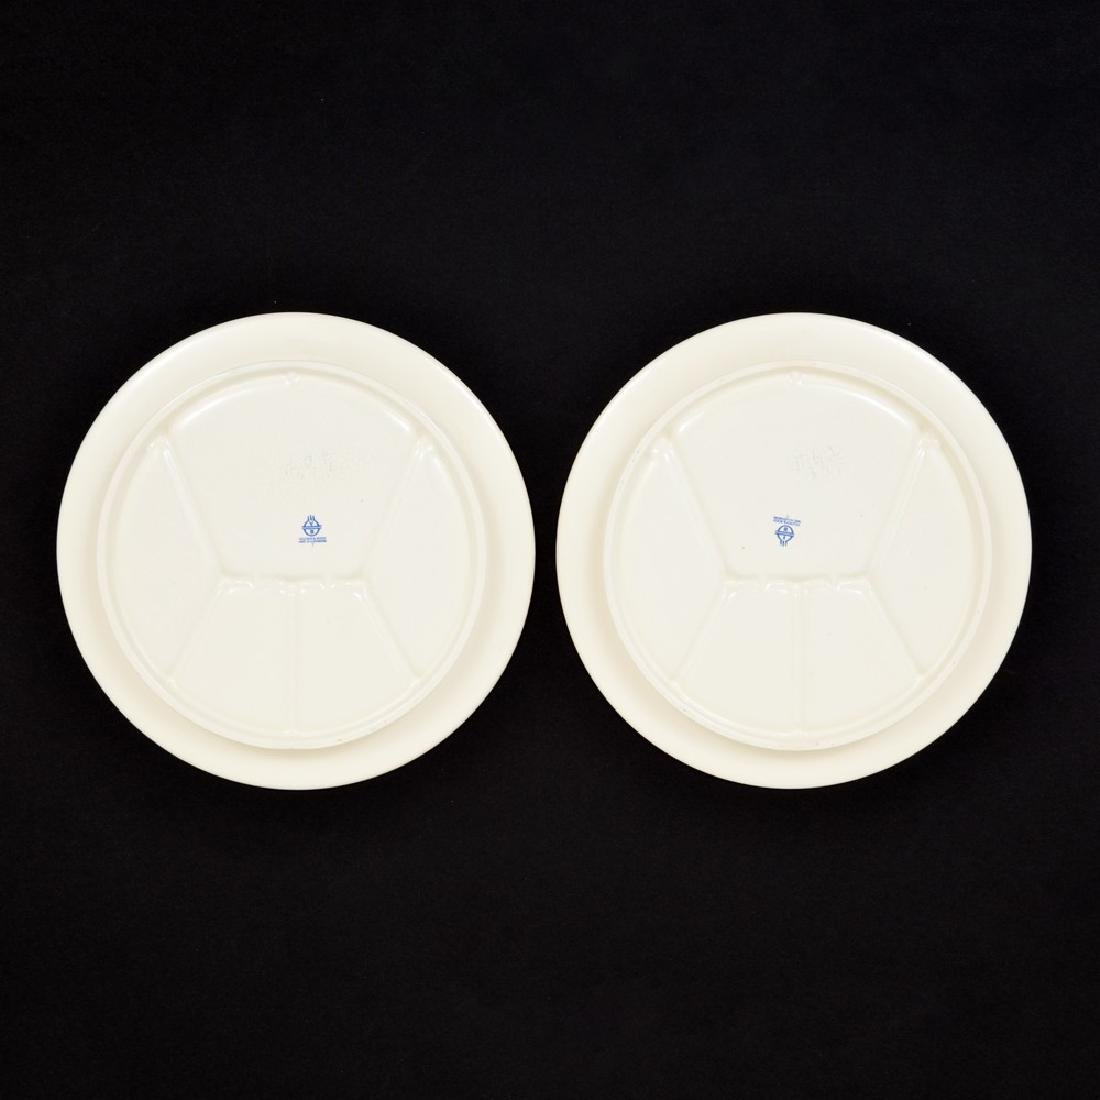 Pair of Villeroy & Boch Sectioned/Fondue Plates - 4